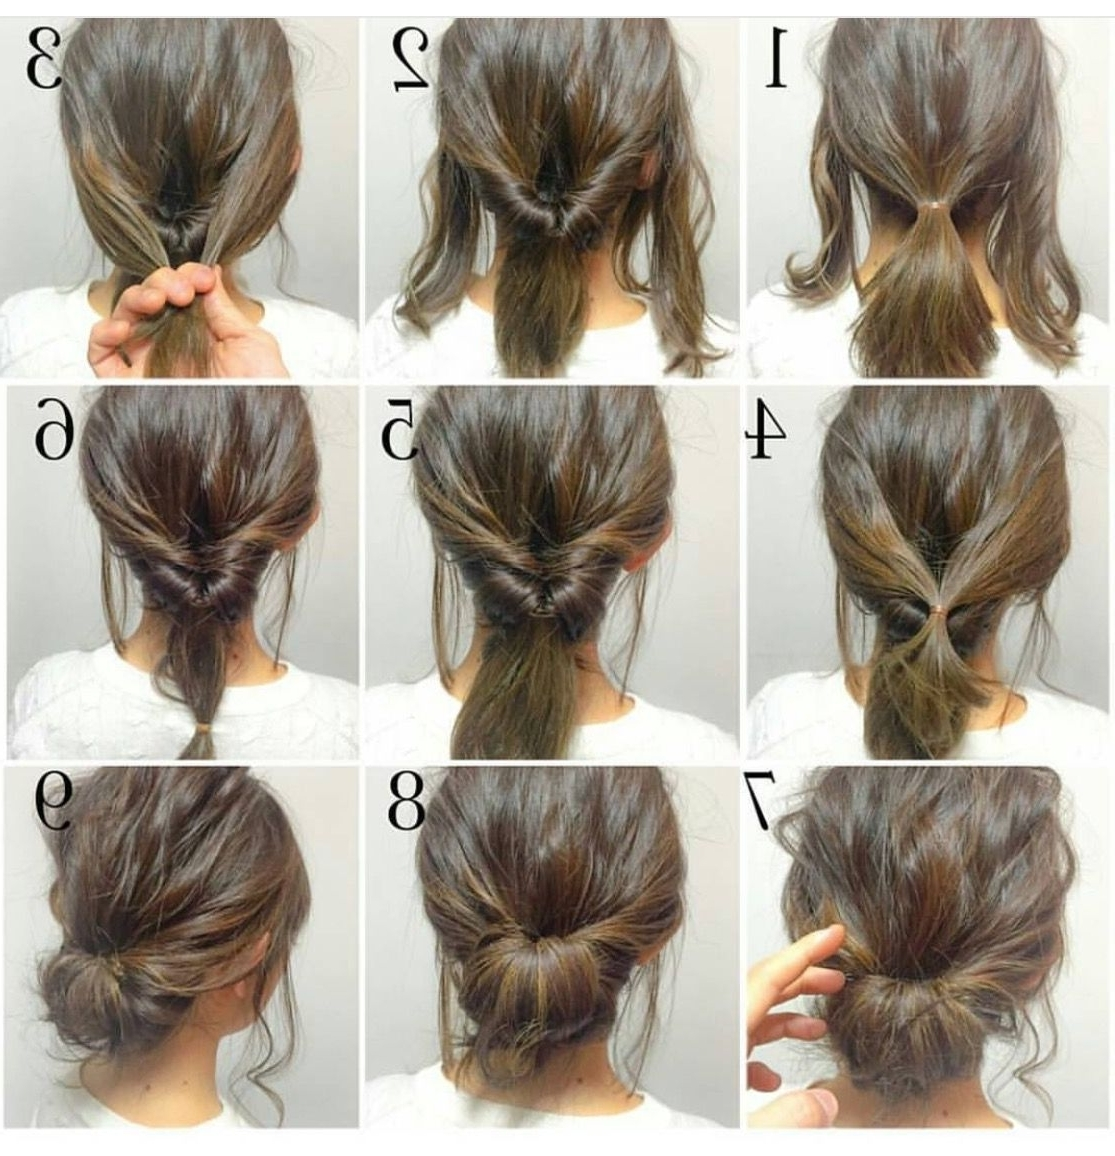 4 Messy Updos For Long Hair | Hairz | Pinterest | Updos, Hair Style Within Messy Updo Hairstyles (View 12 of 15)